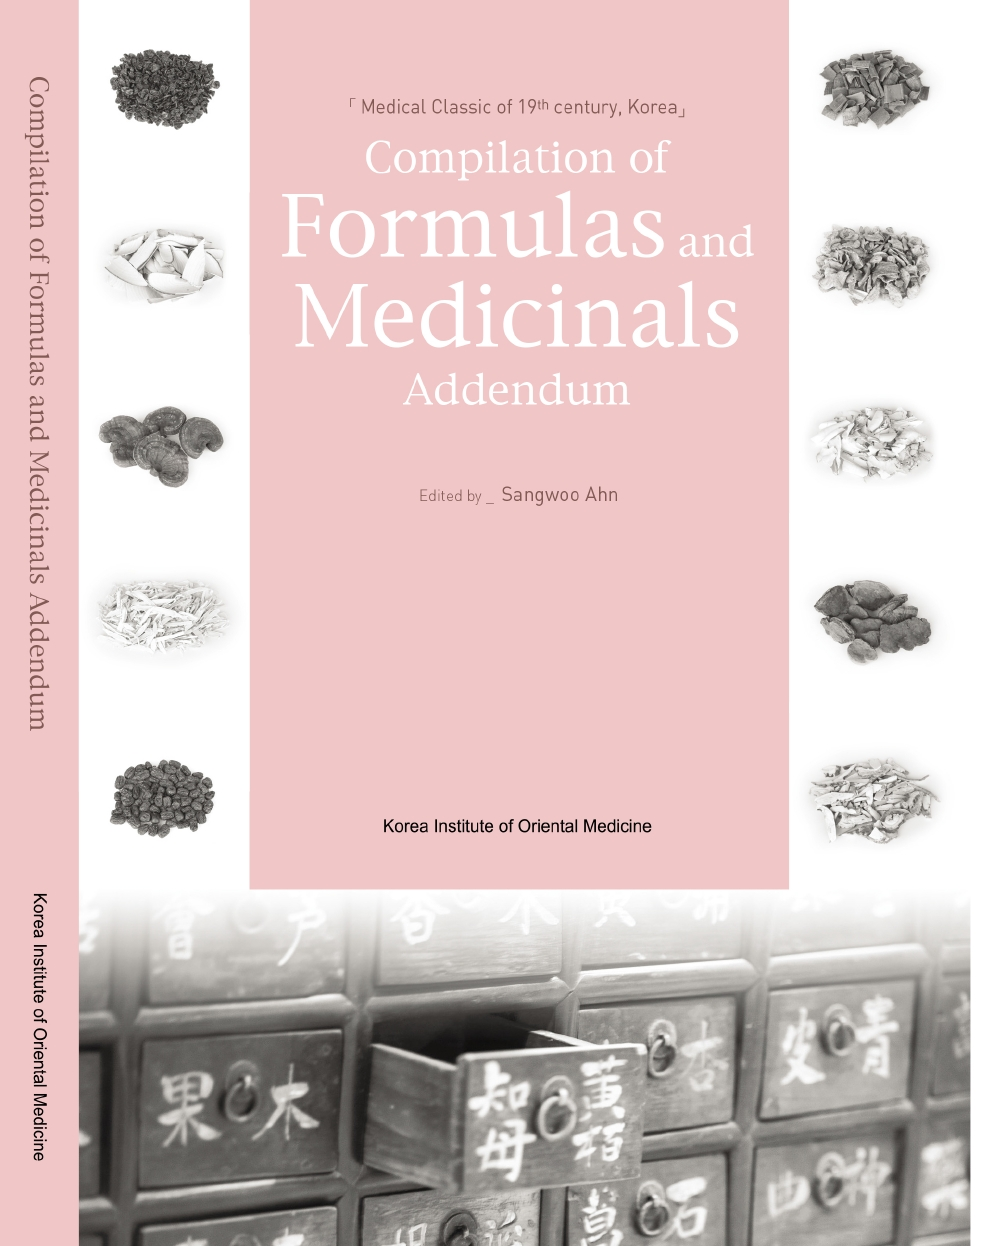 4. Compilation of Formulas and Medicinals Addendum 1 - English Version